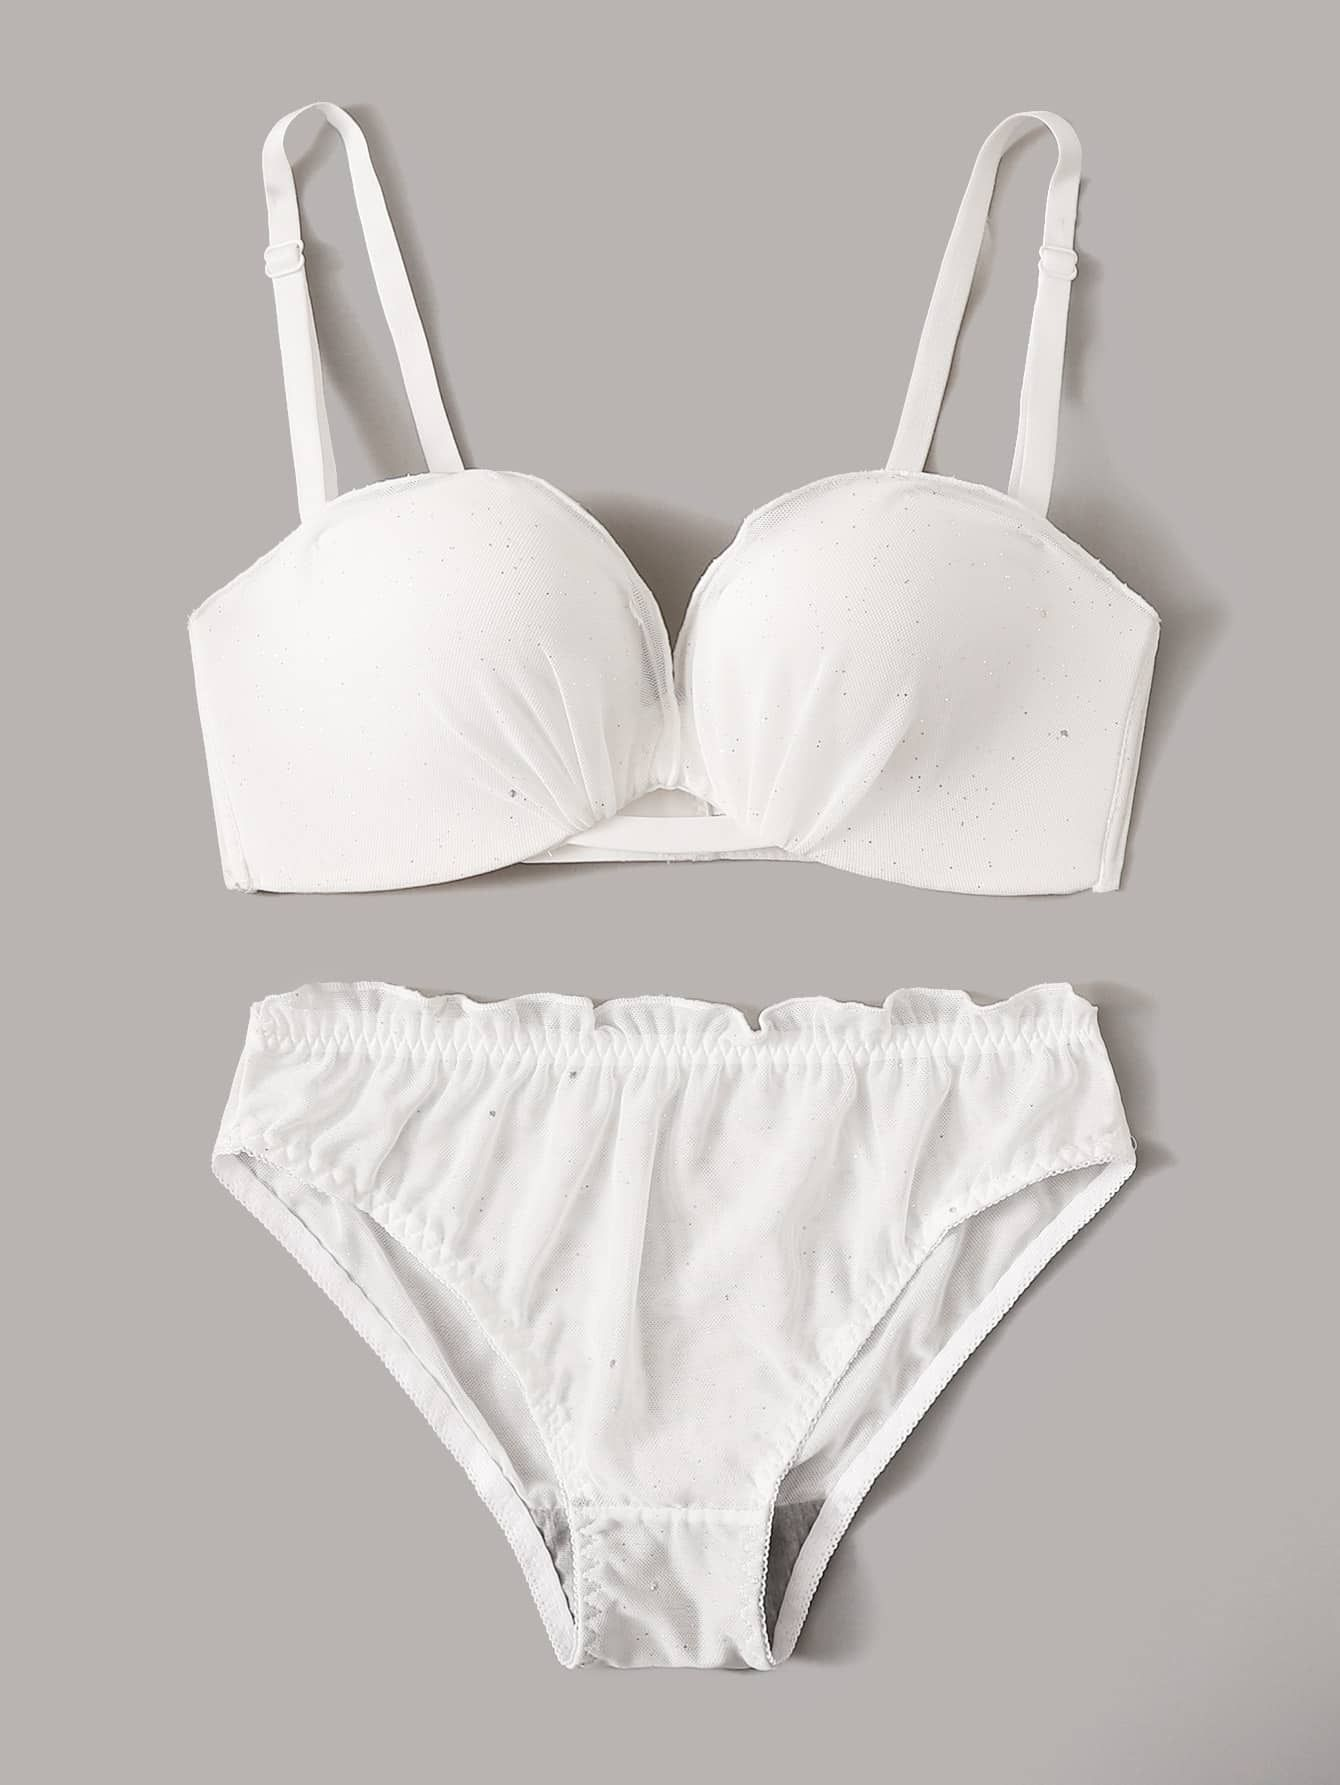 Details about  /Sexy Lingerie Wire Free Bra/'s For Ladies Polyester Spandex Solid Under-wears Bra